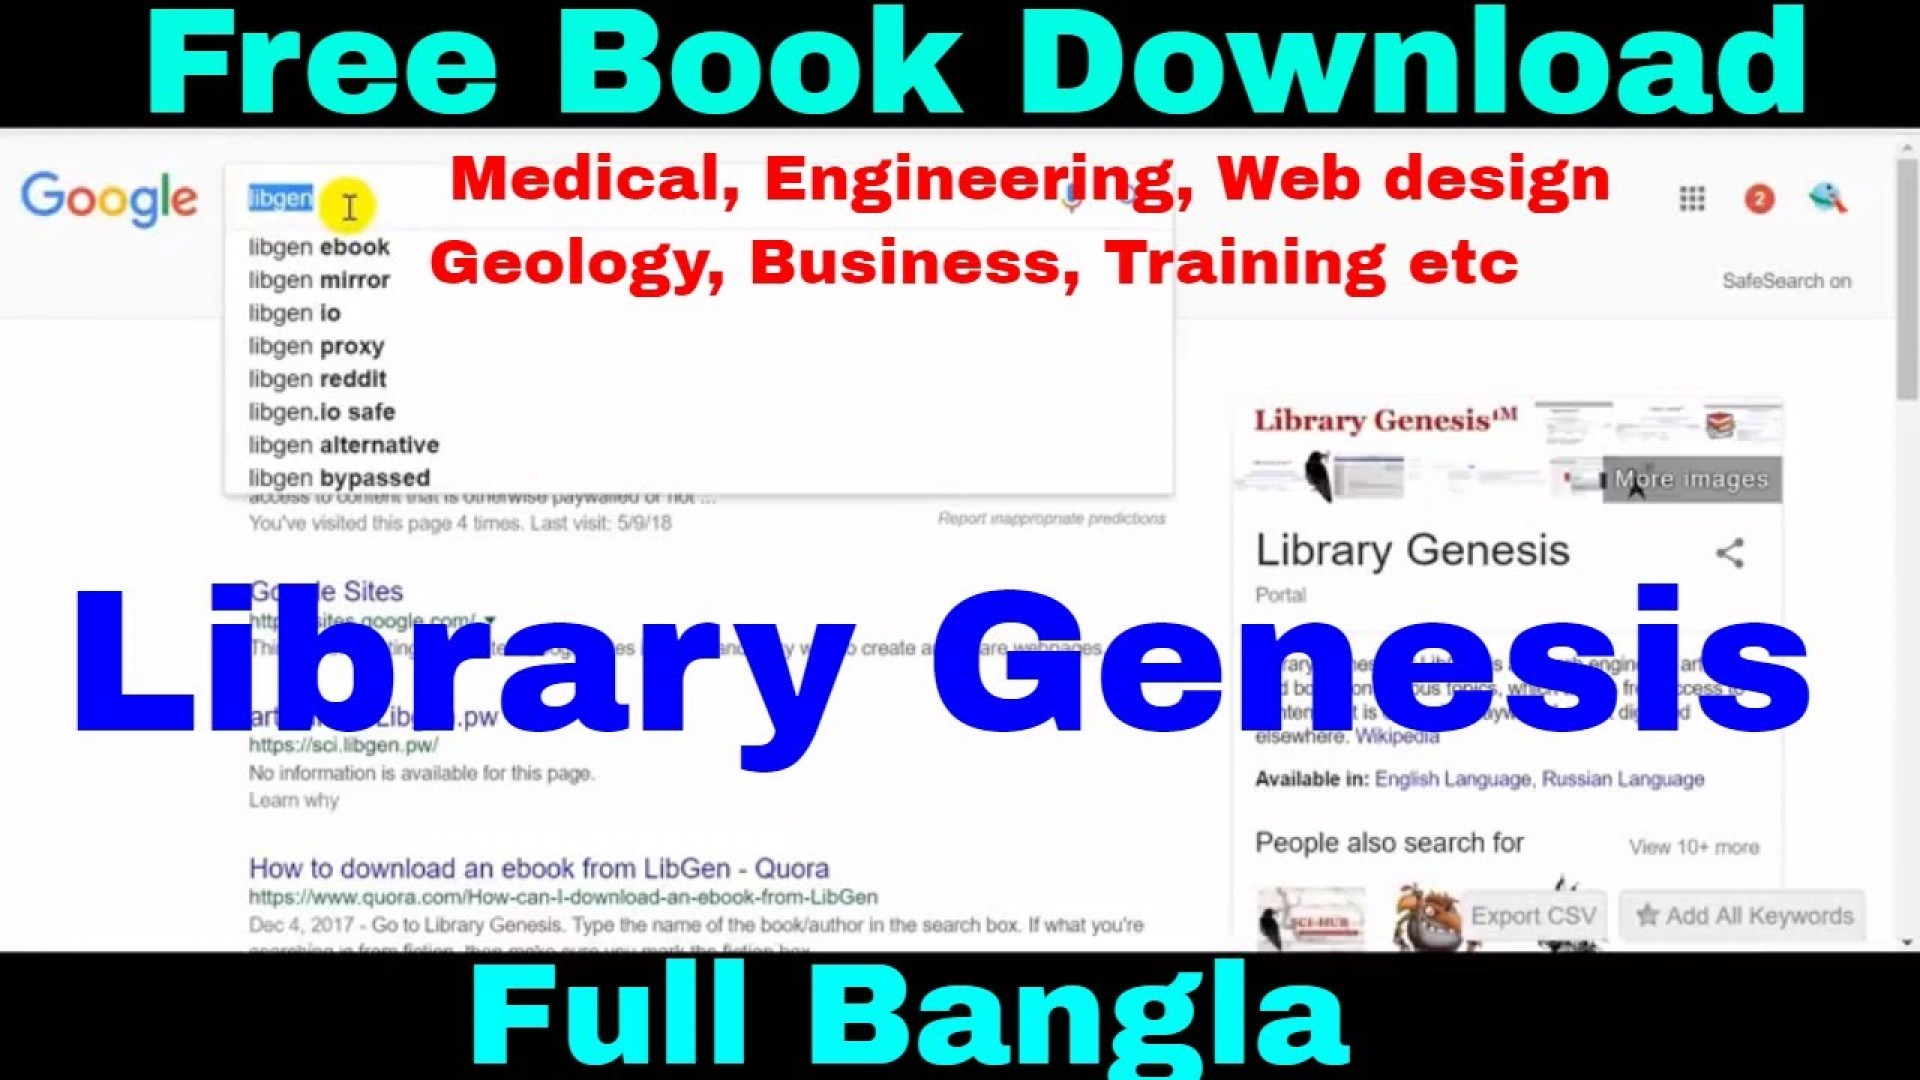 015 Maxresdefault Best Site To Download Researchs Free Unbelievable Research Papers How From Ieee Paper Google Scholar 1920